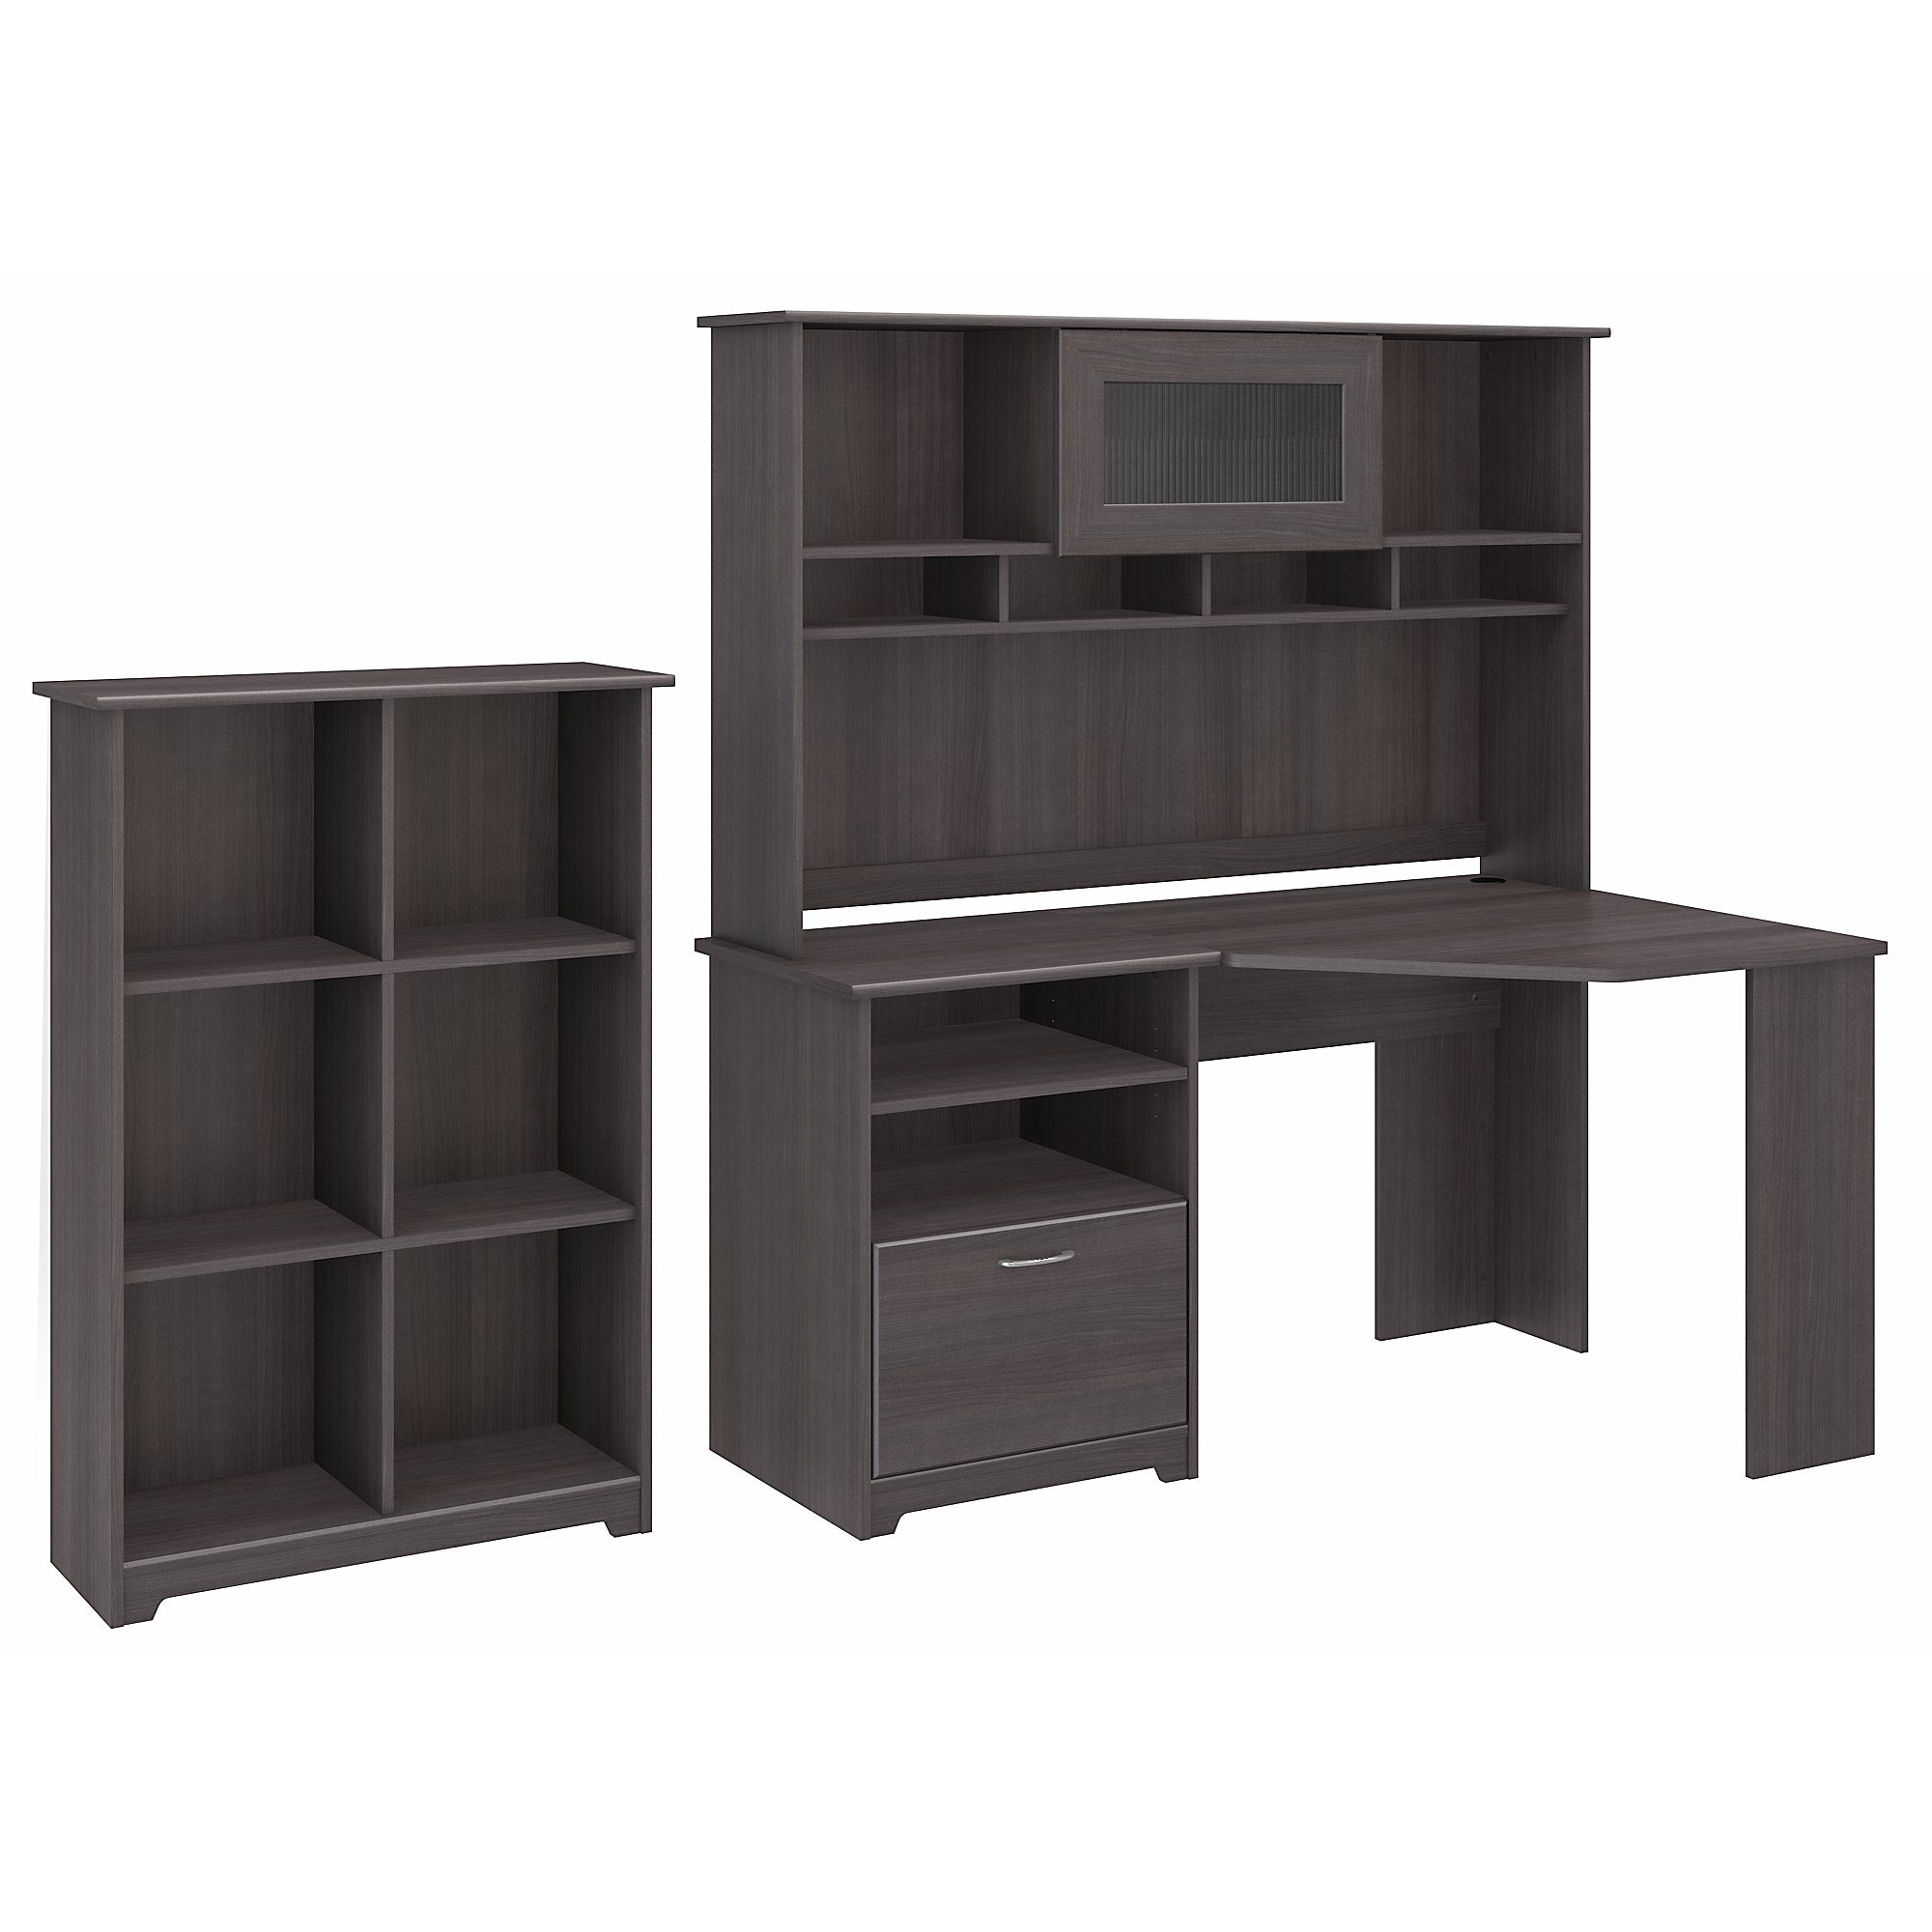 Bush Furniture Cabot Corner Desk with Hutch and 6 Cube Organizer in Heather Gray